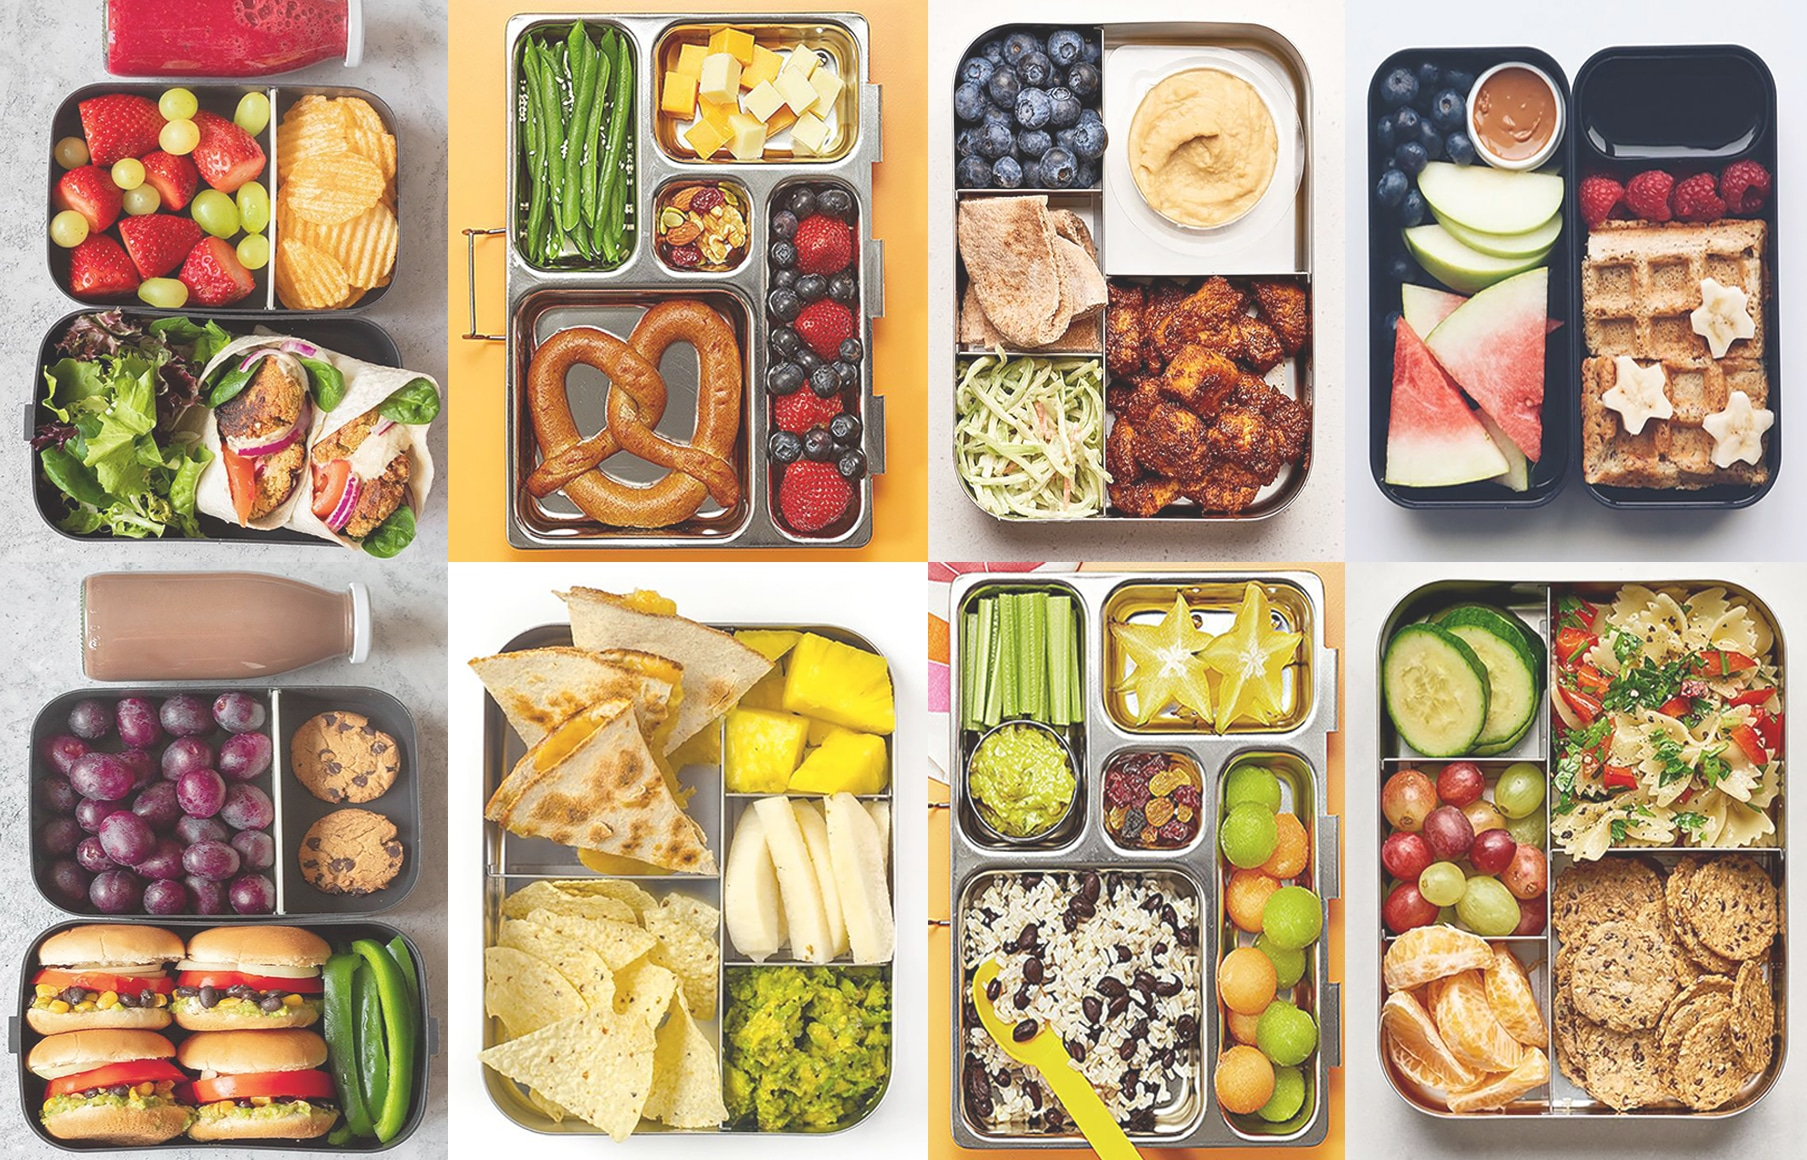 Summertime Bento Box Ideas For The Pool or The Beach